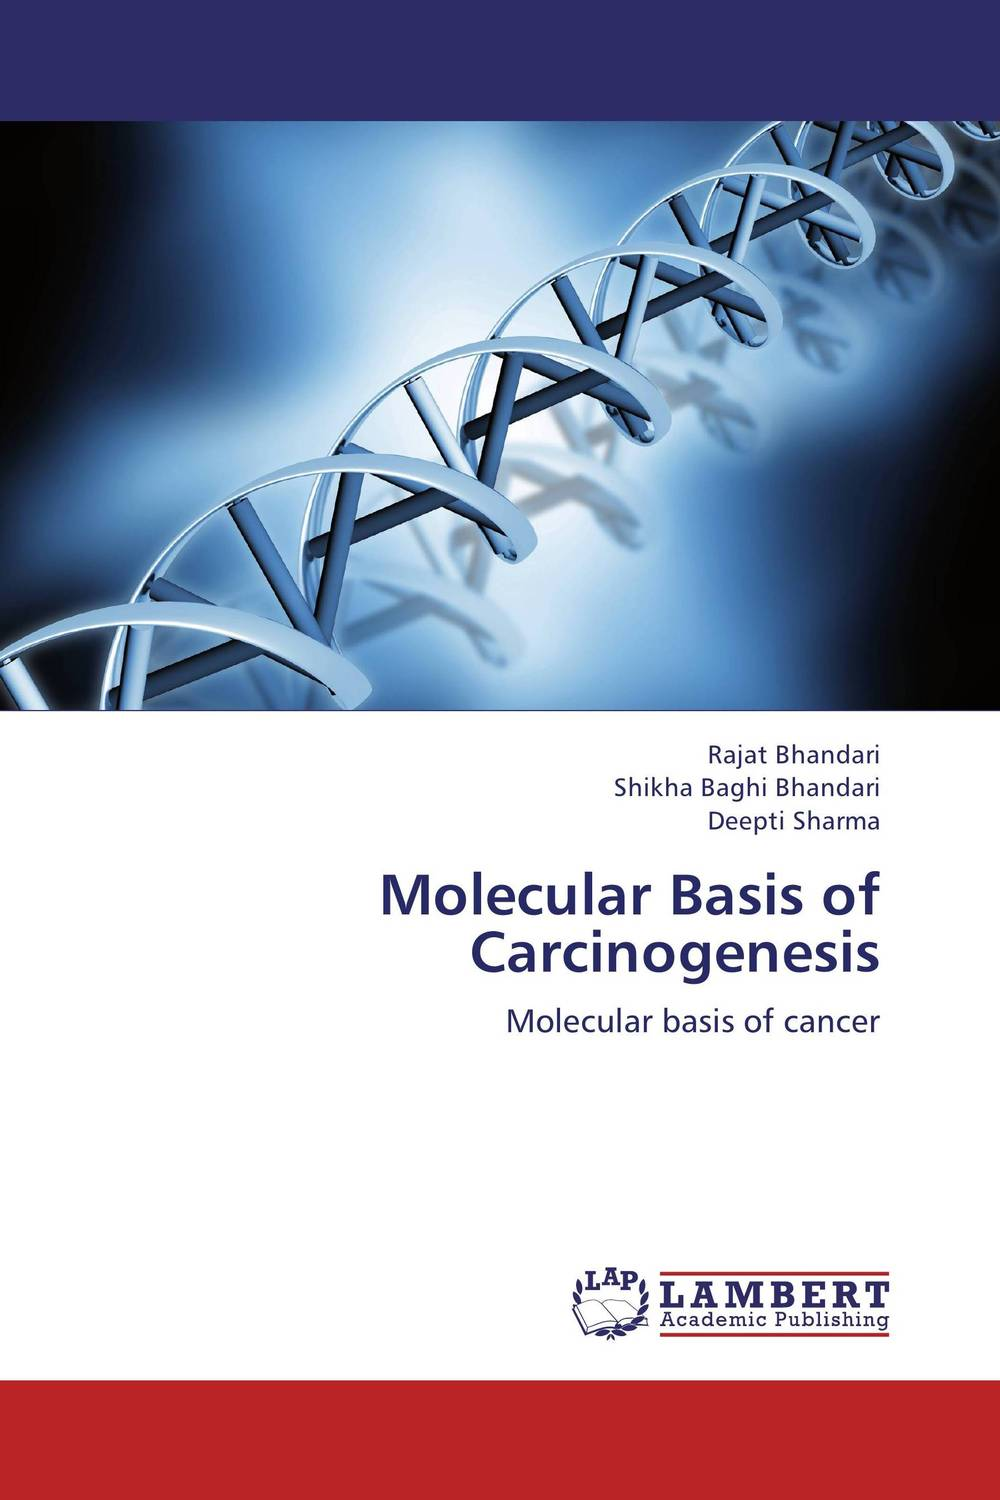 Molecular Basis of Carcinogenesis 320300 045 umbra